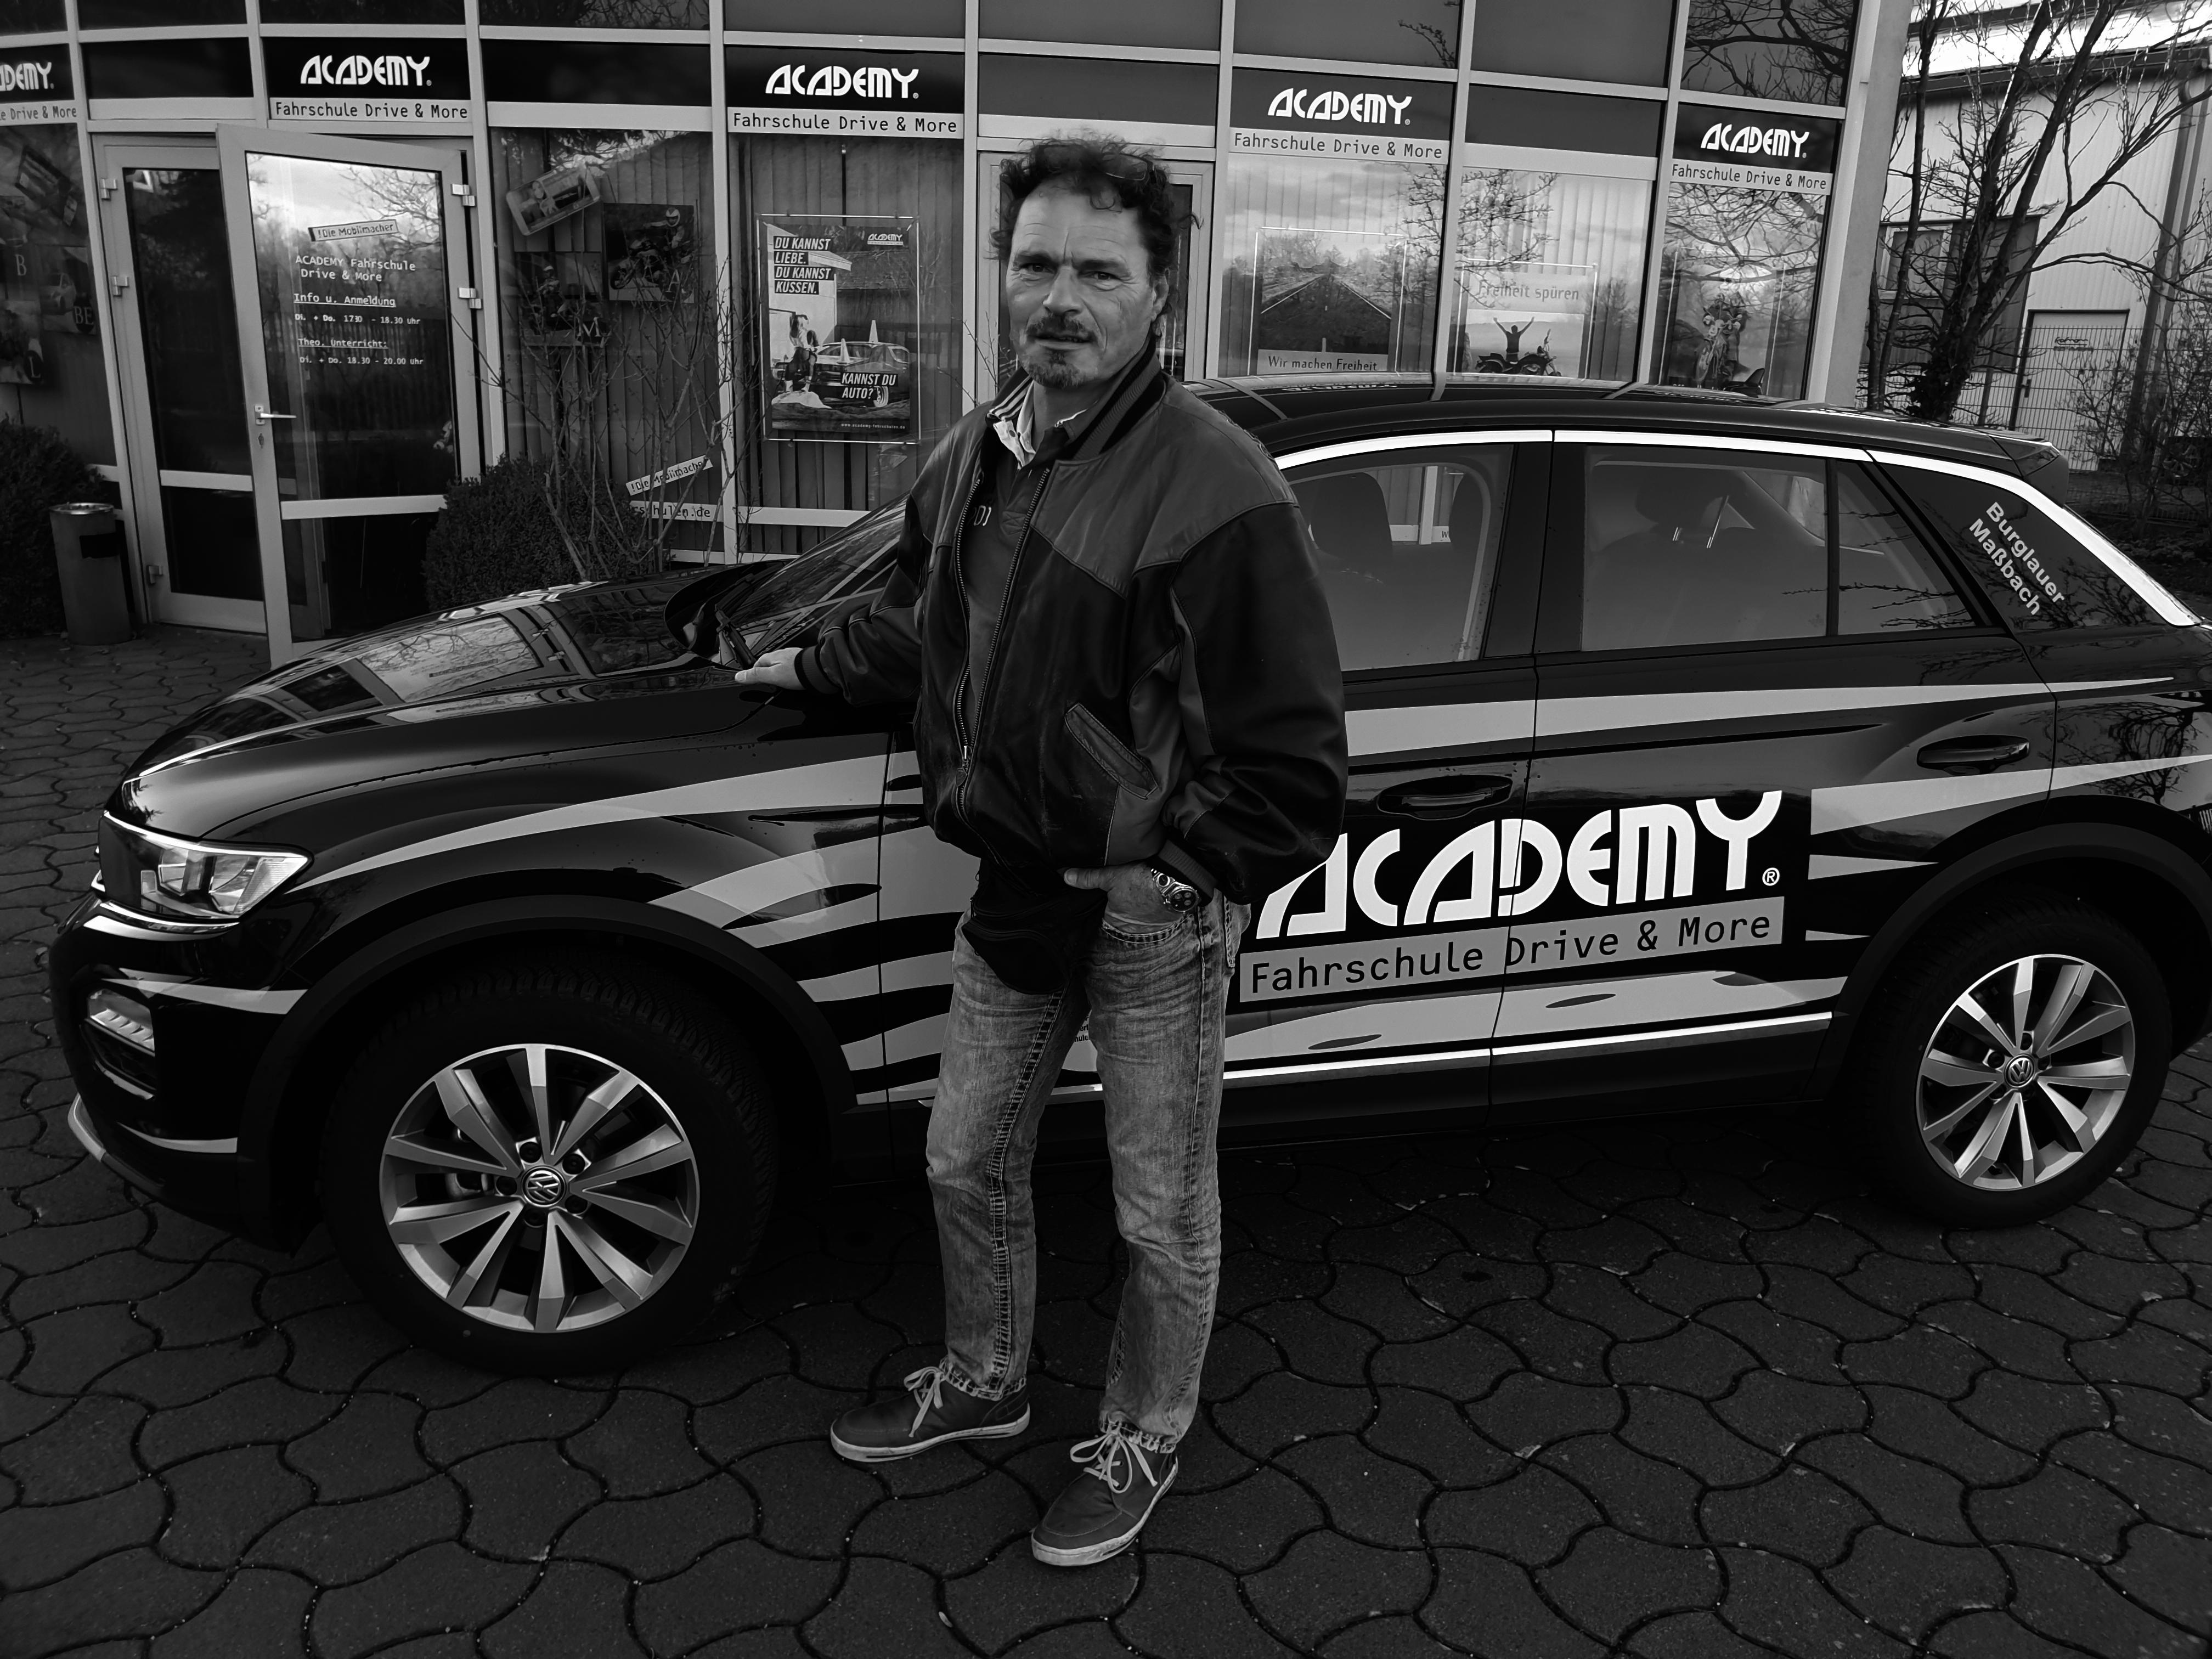 de.academy.fahrschulen.model.instructor.Instructor@6aa1